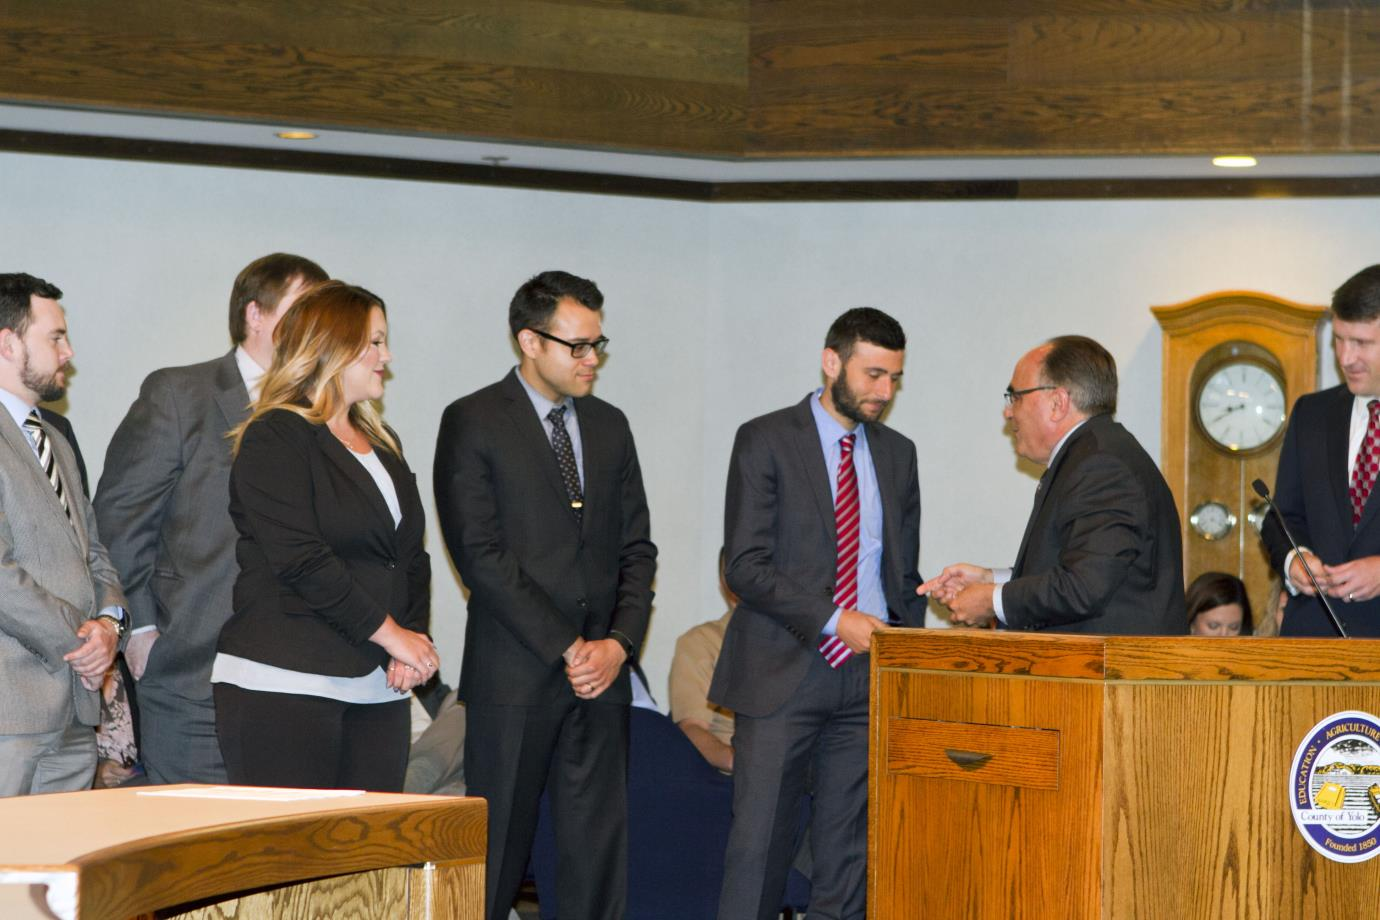 Public Defender Interns with Supervisor Provenza